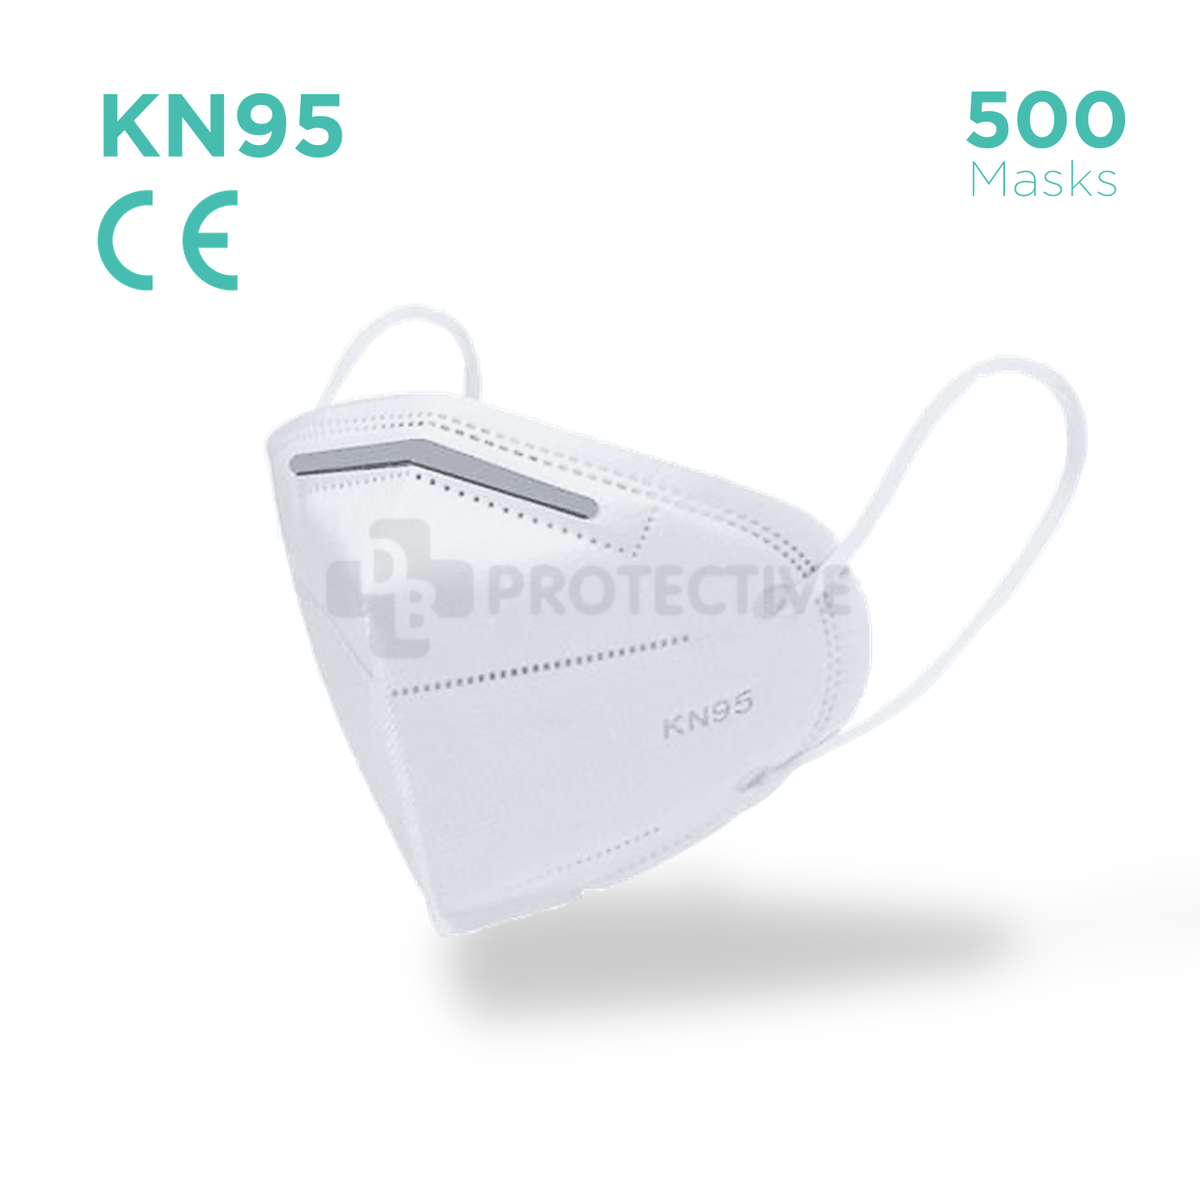 KN95 Face mask - Pack of 500. - USA Medical Supply - DB Protective